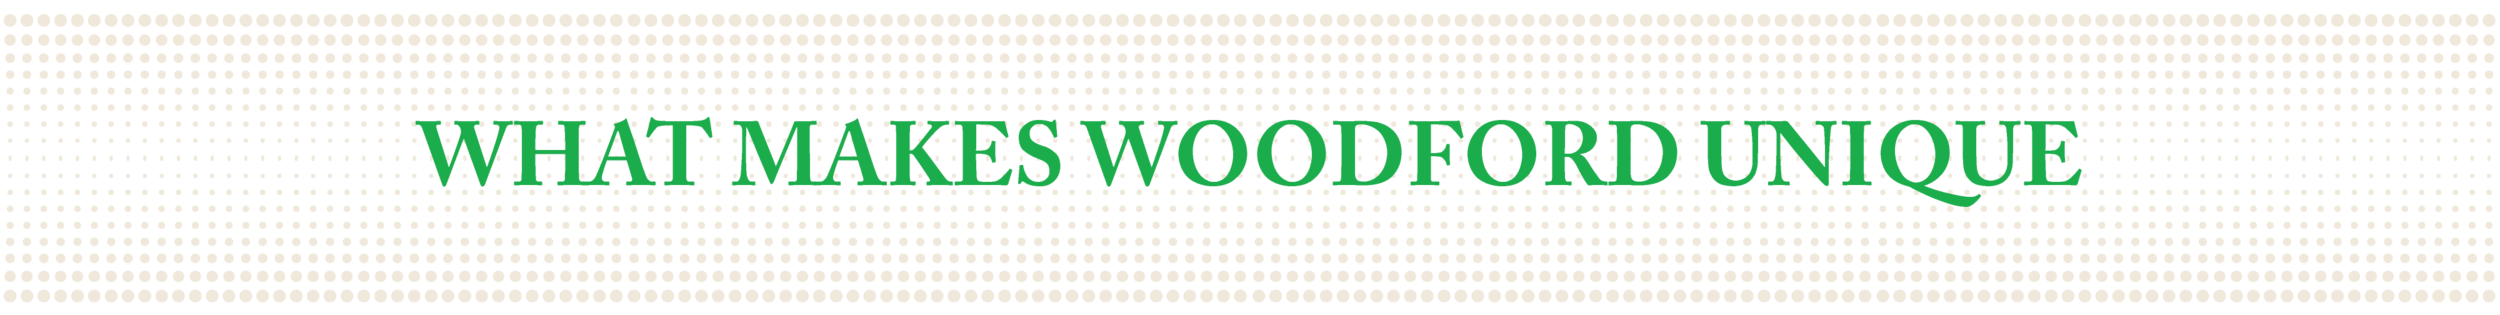 Woodford_WhatMakesWoodfordUnique_v1.png